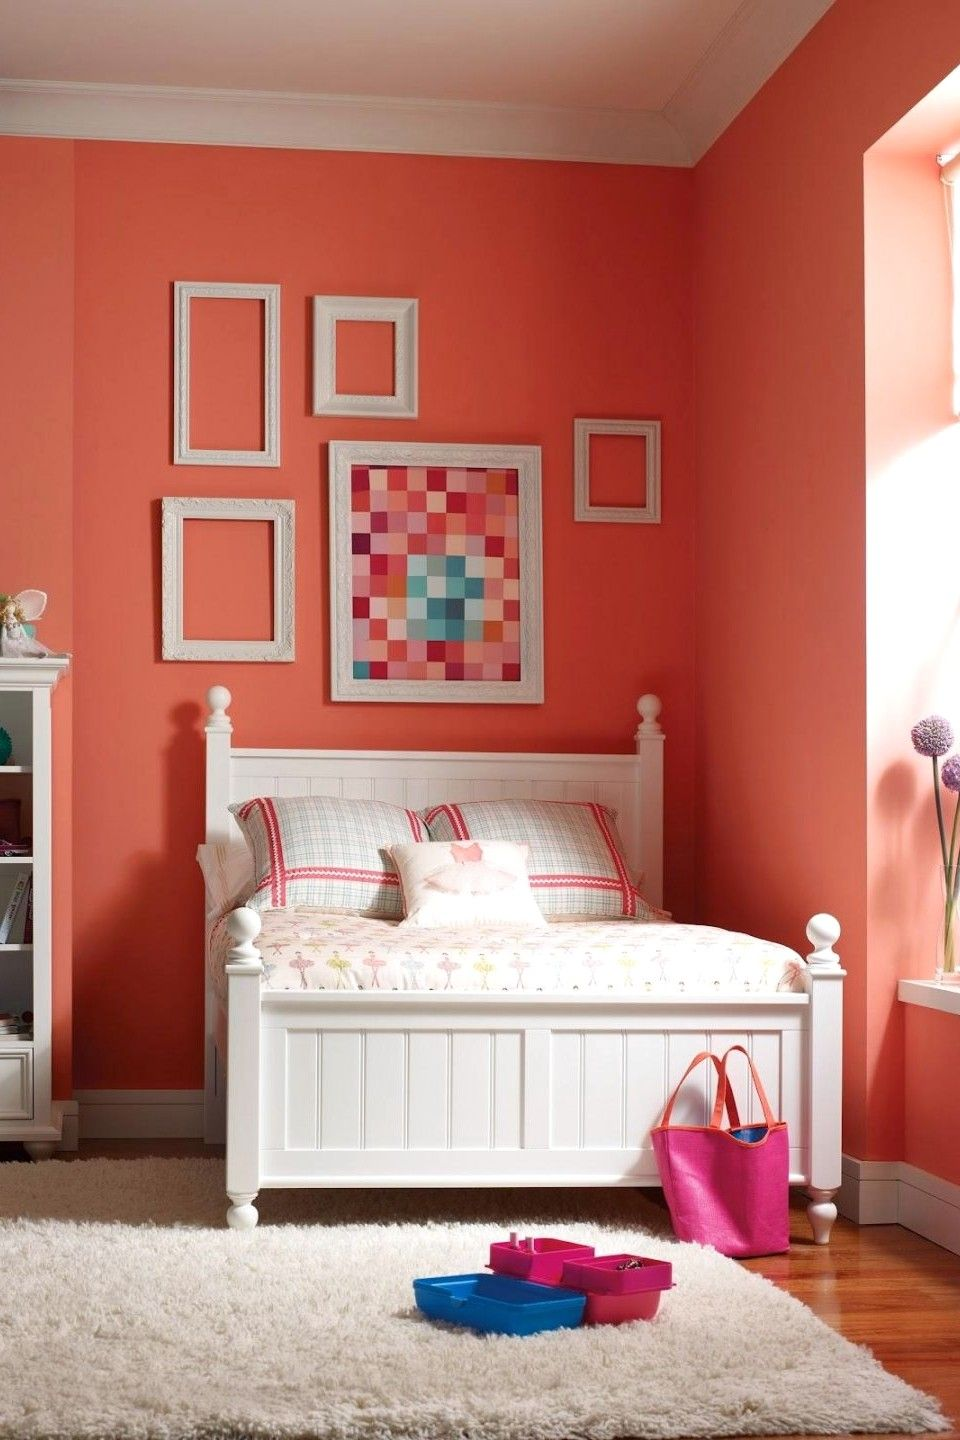 17 inspiring bedroom decorating examples in 2020 bright on sample color schemes for interiors id=53710